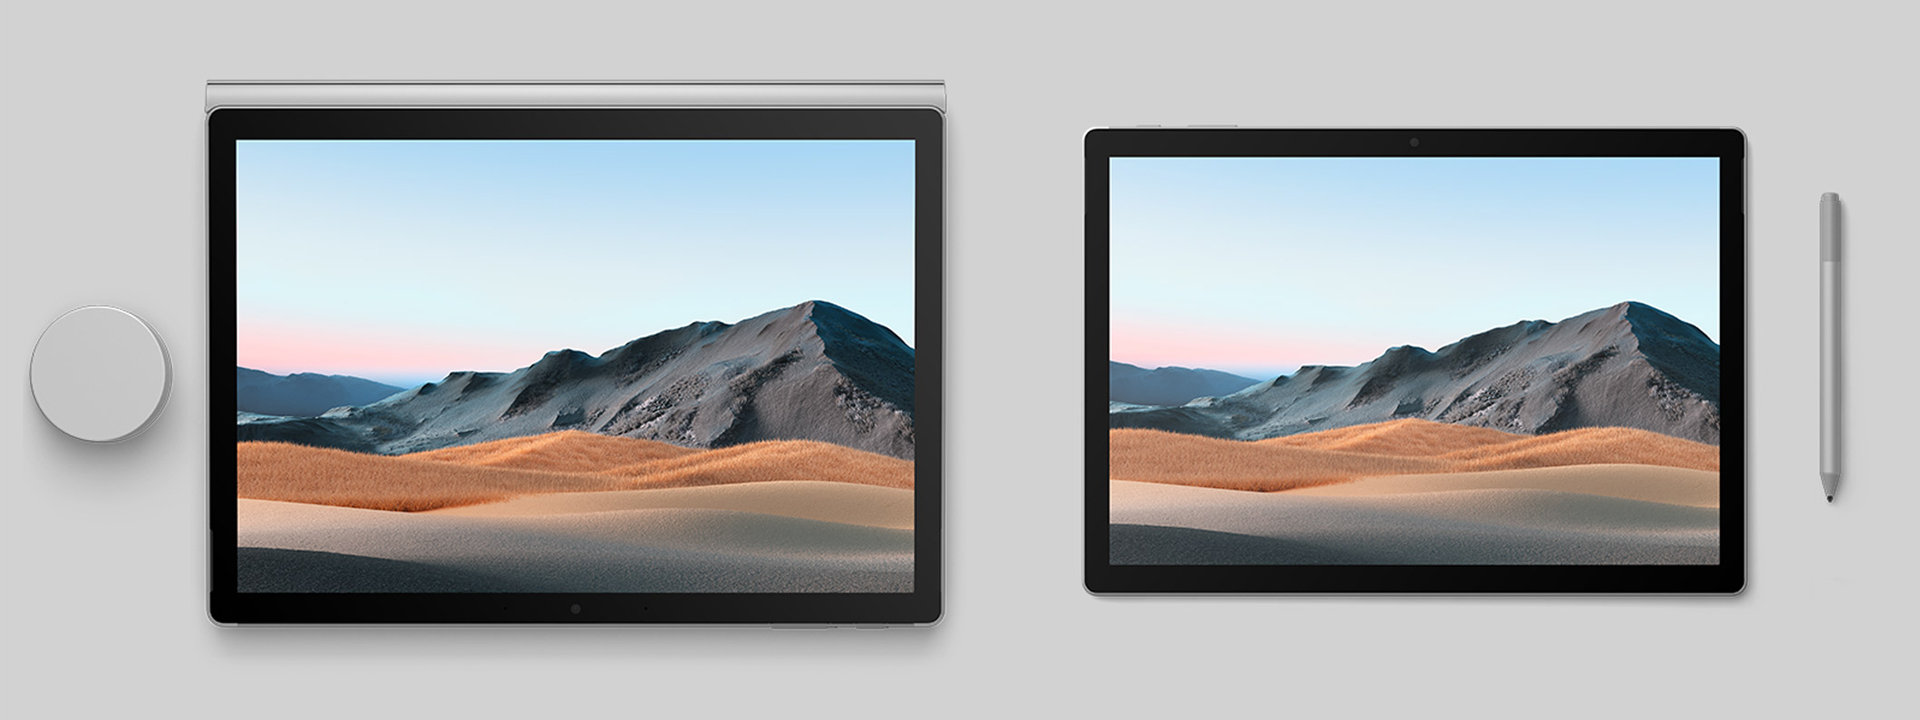 Surface Book 3 in two sizes in tablet mode. Surface Dial. Surface Pen.